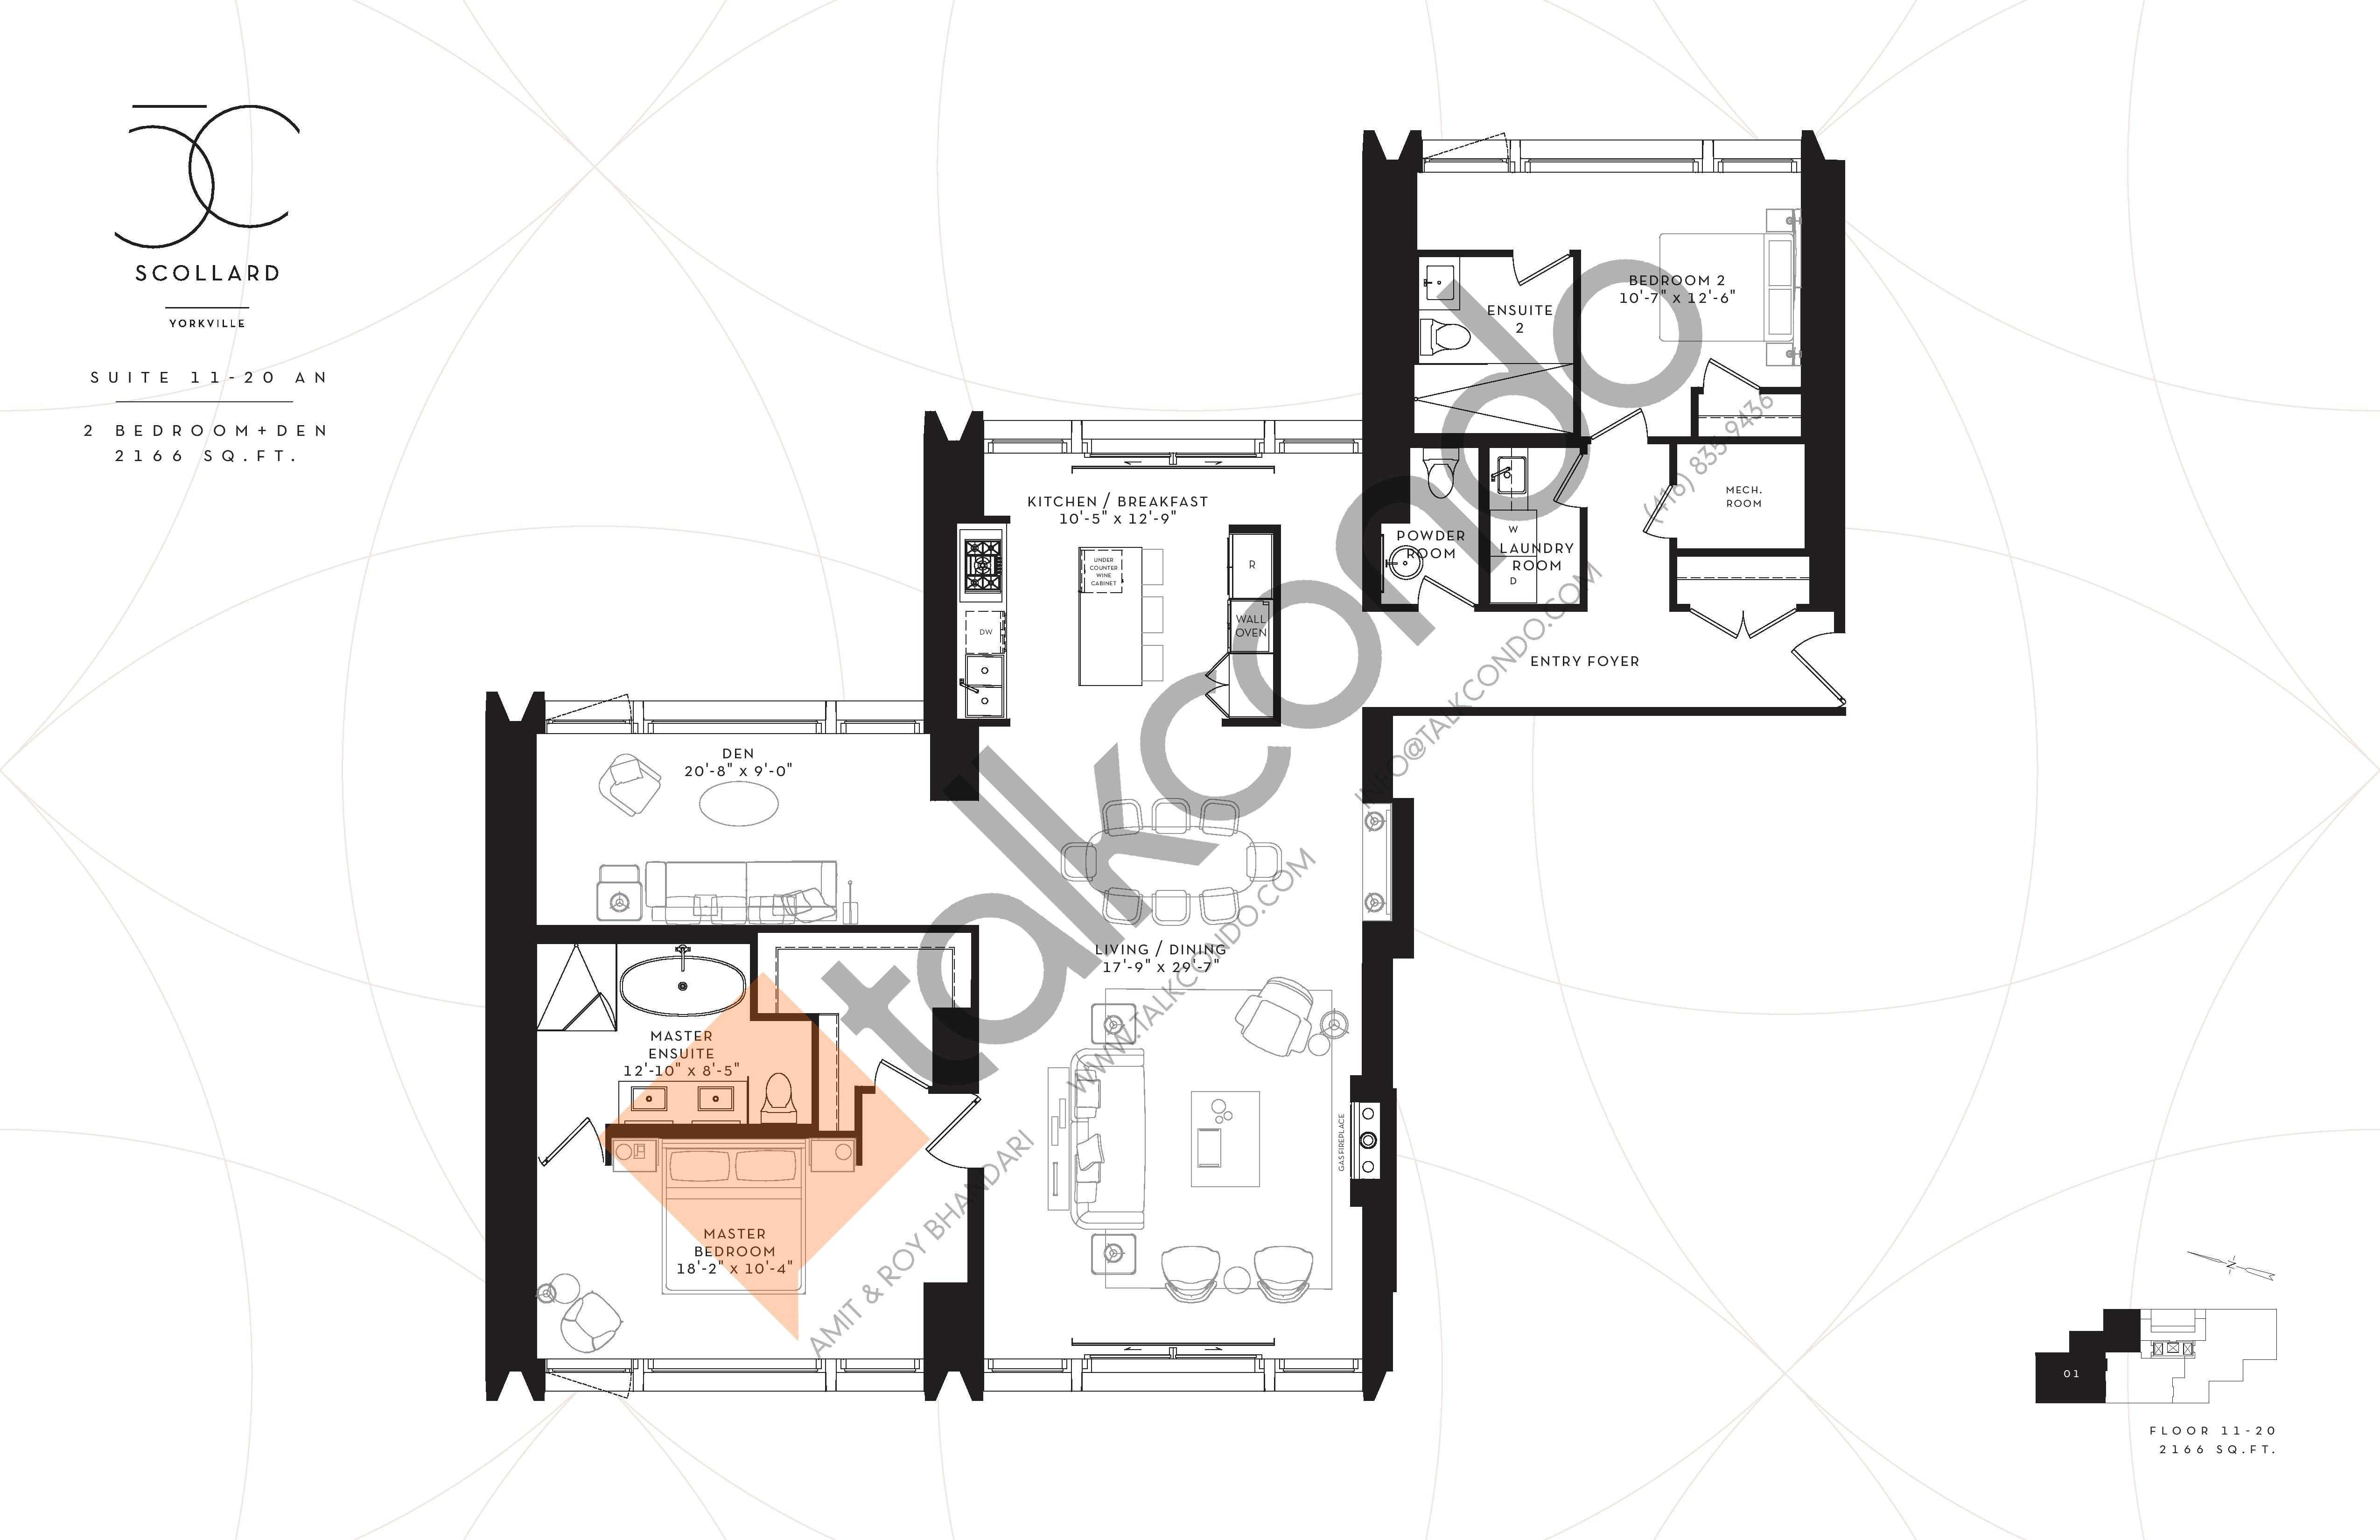 Suite 11-20 AN Floor Plan at Fifty Scollard Condos - 2166 sq.ft